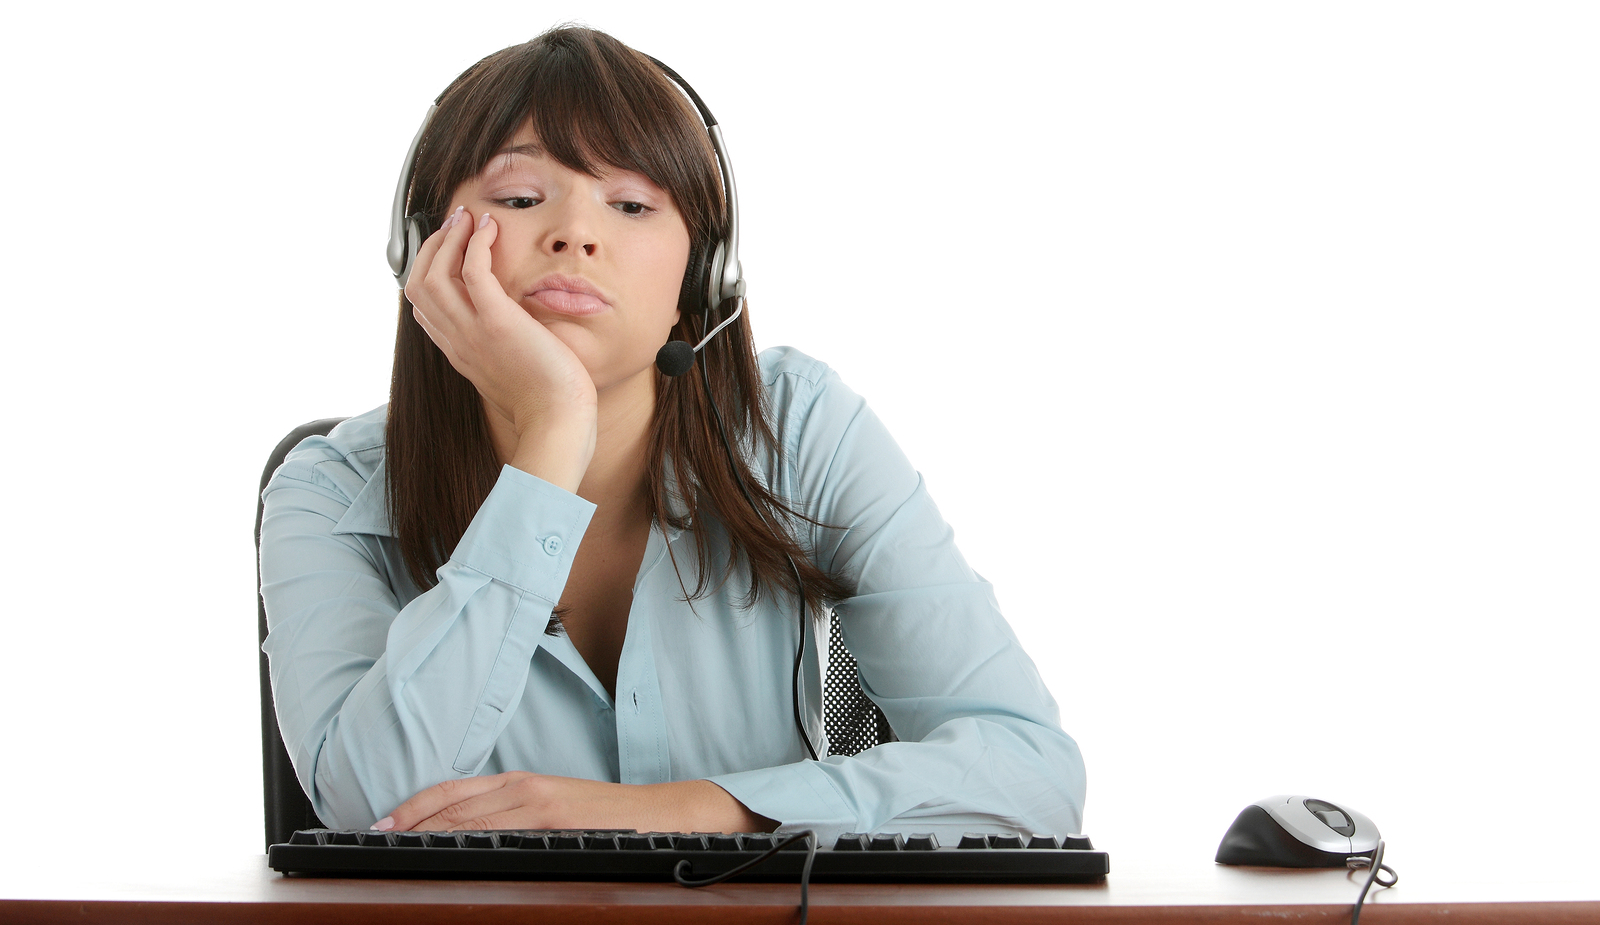 Bored contact center agent feeling burned out.